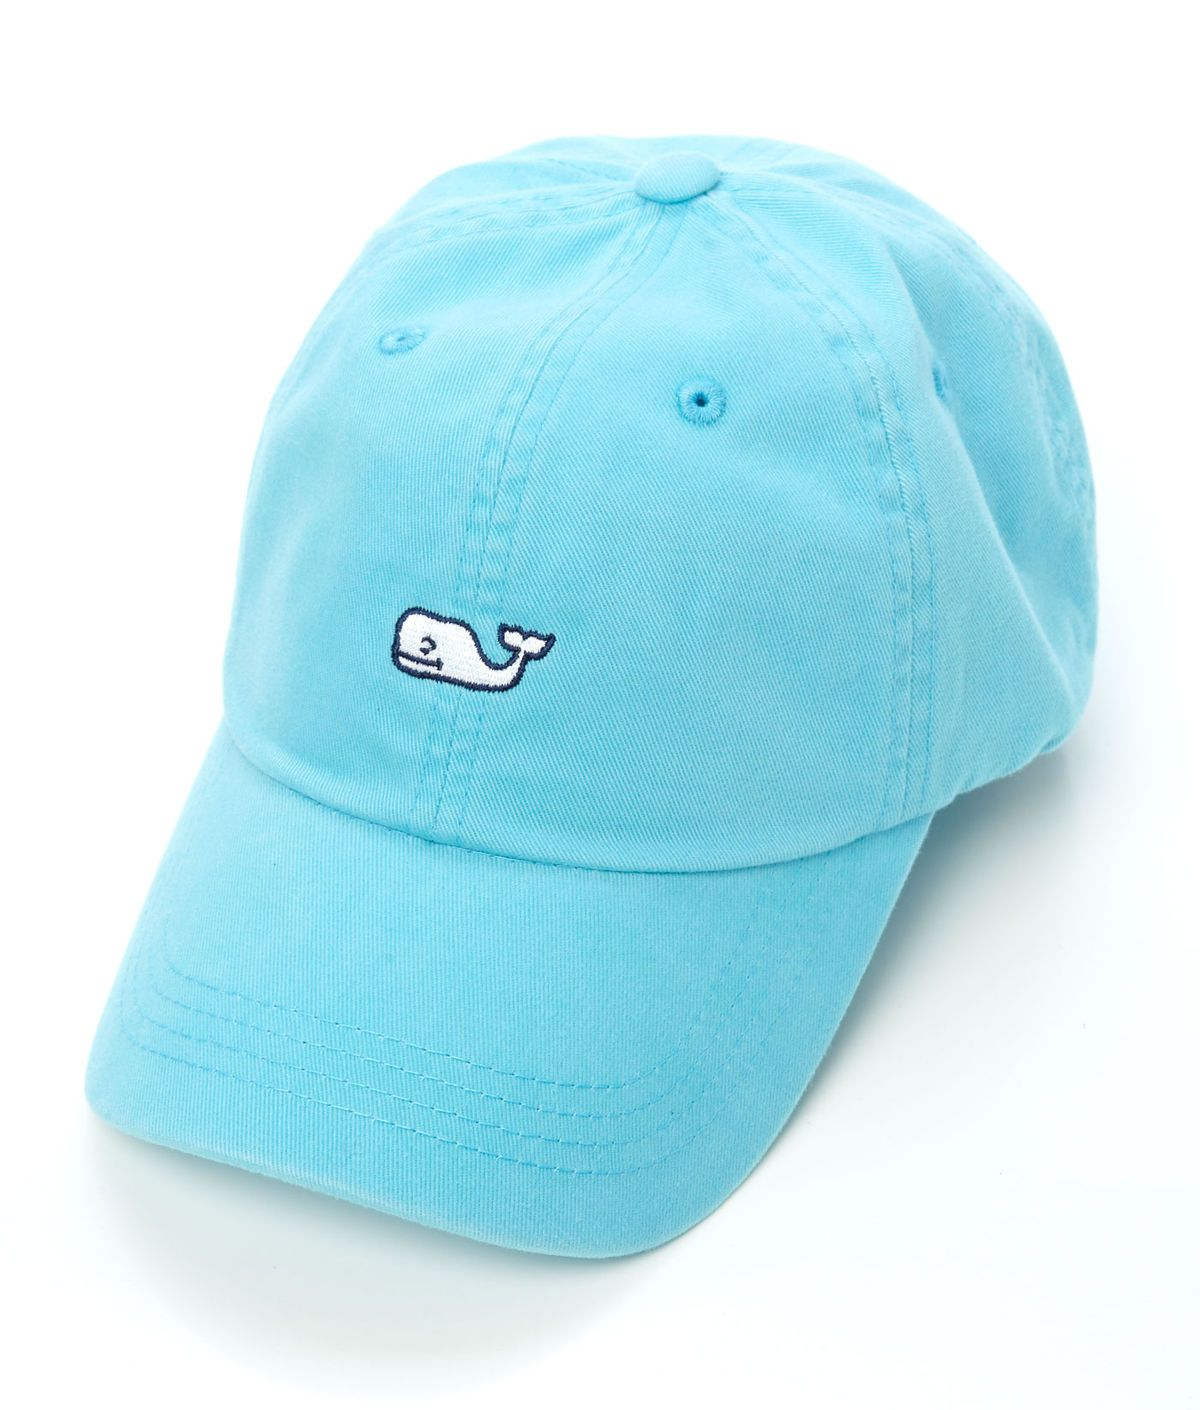 whale logo baseball hat fashion forward